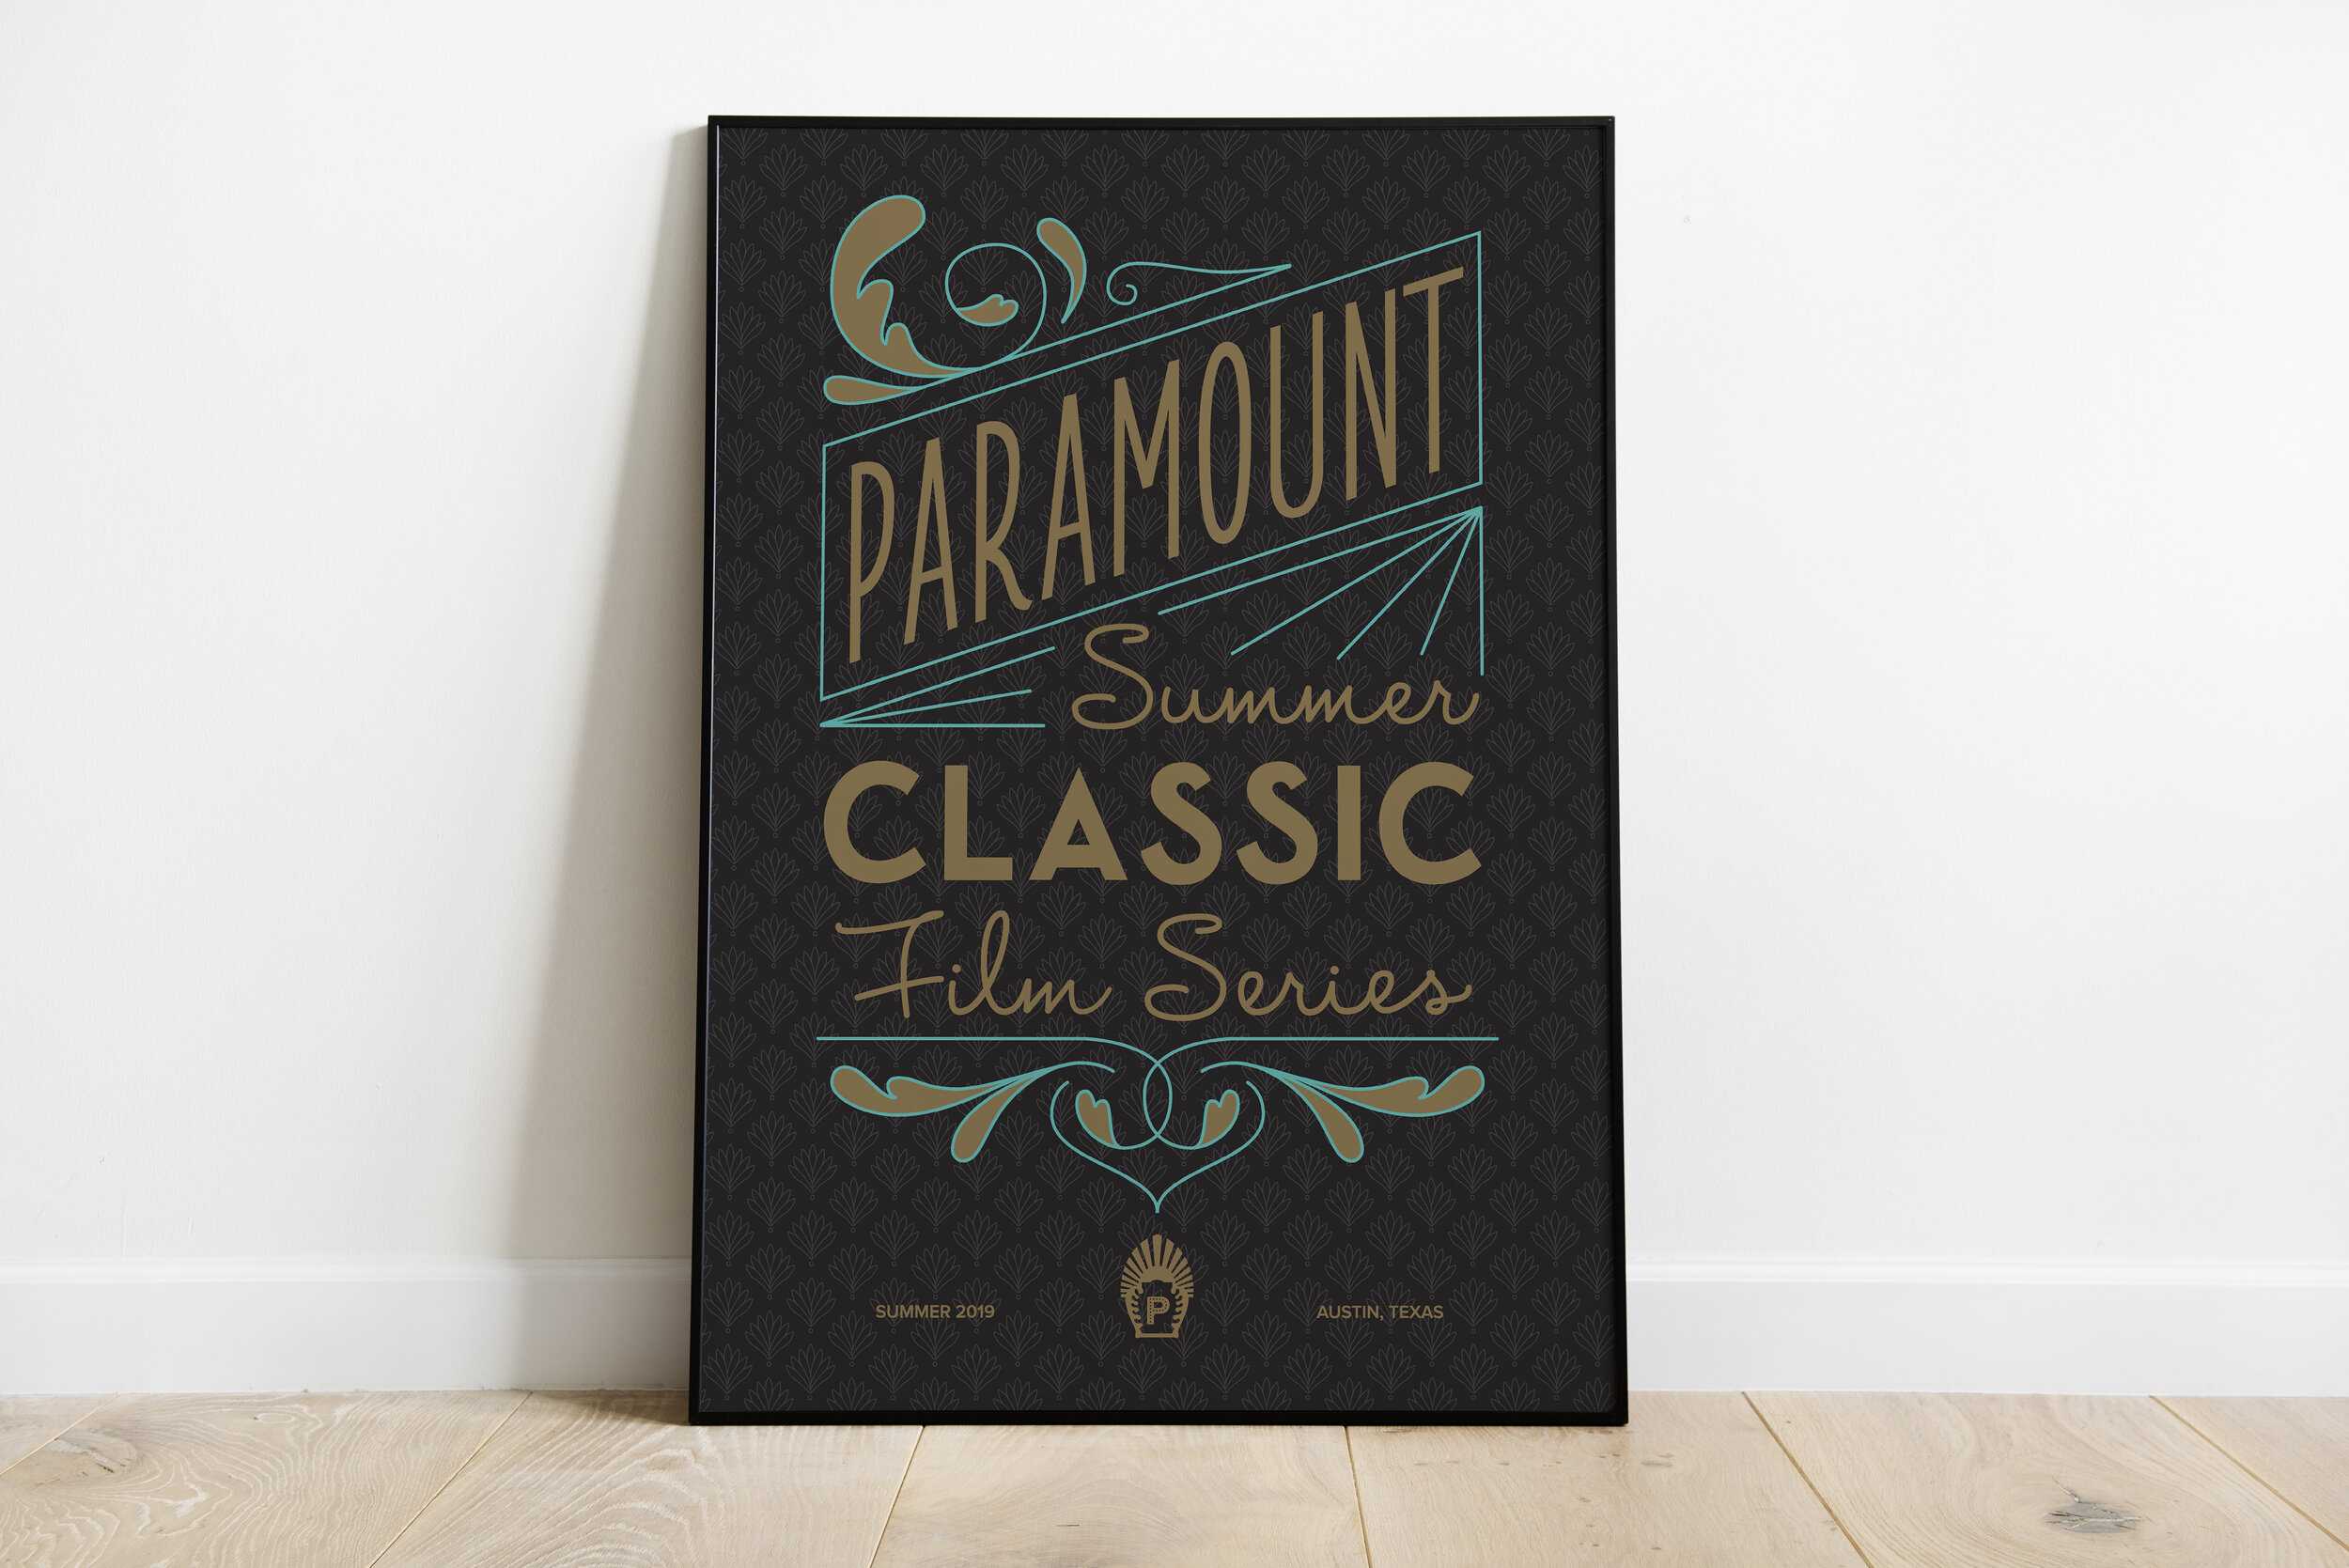 Hand lettered poster and t-shirt design, created for Paramount Theatre.